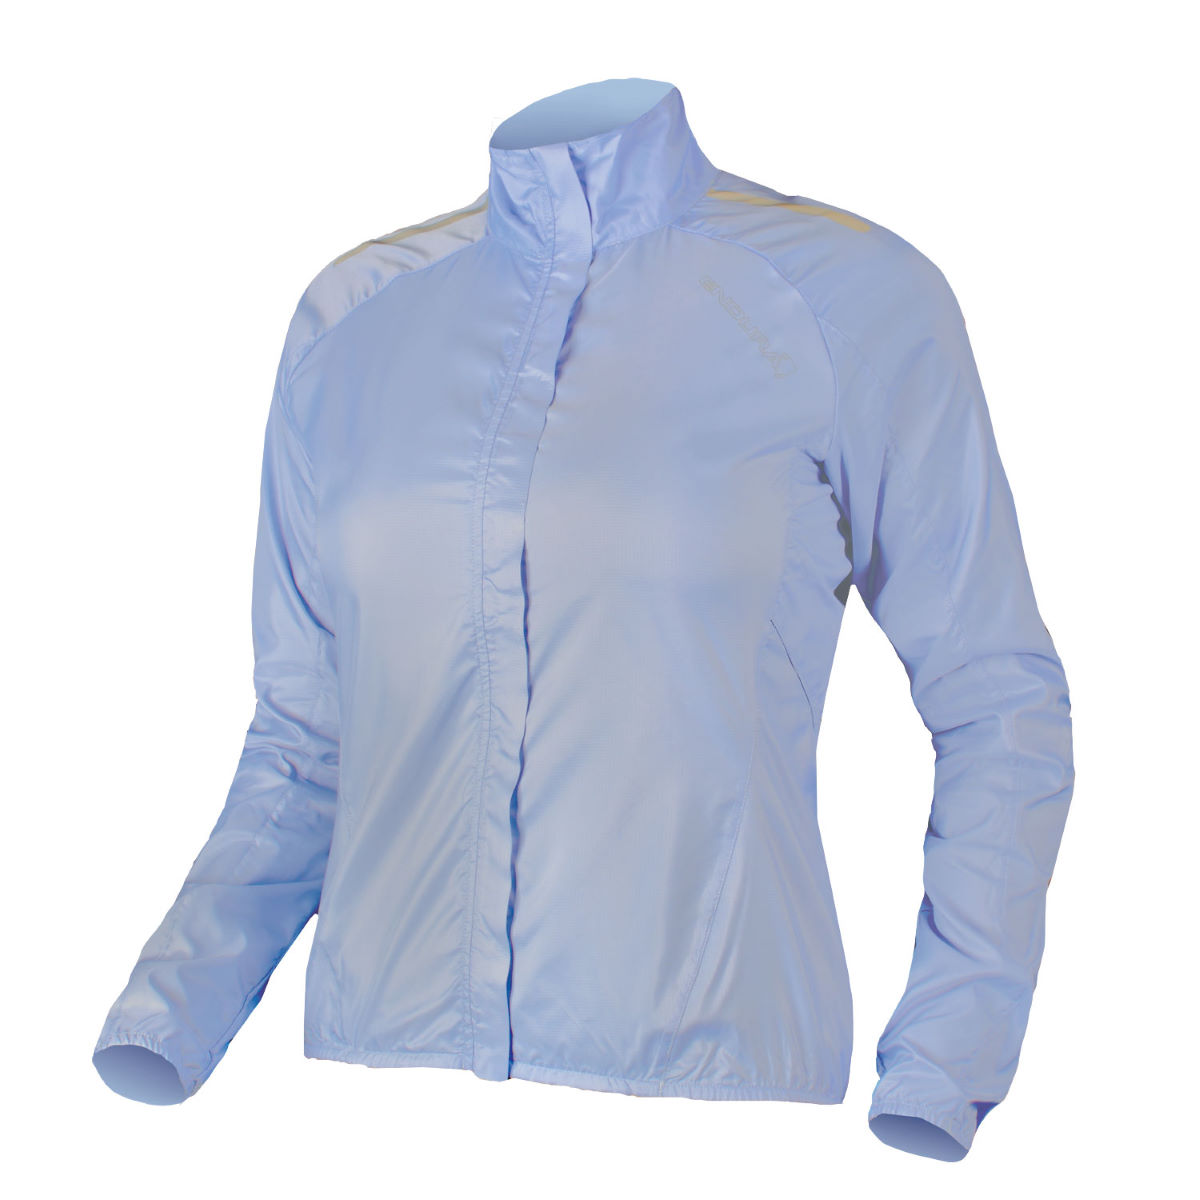 Endura Women's Pakajak Showerproof Jacket - X Small Blue